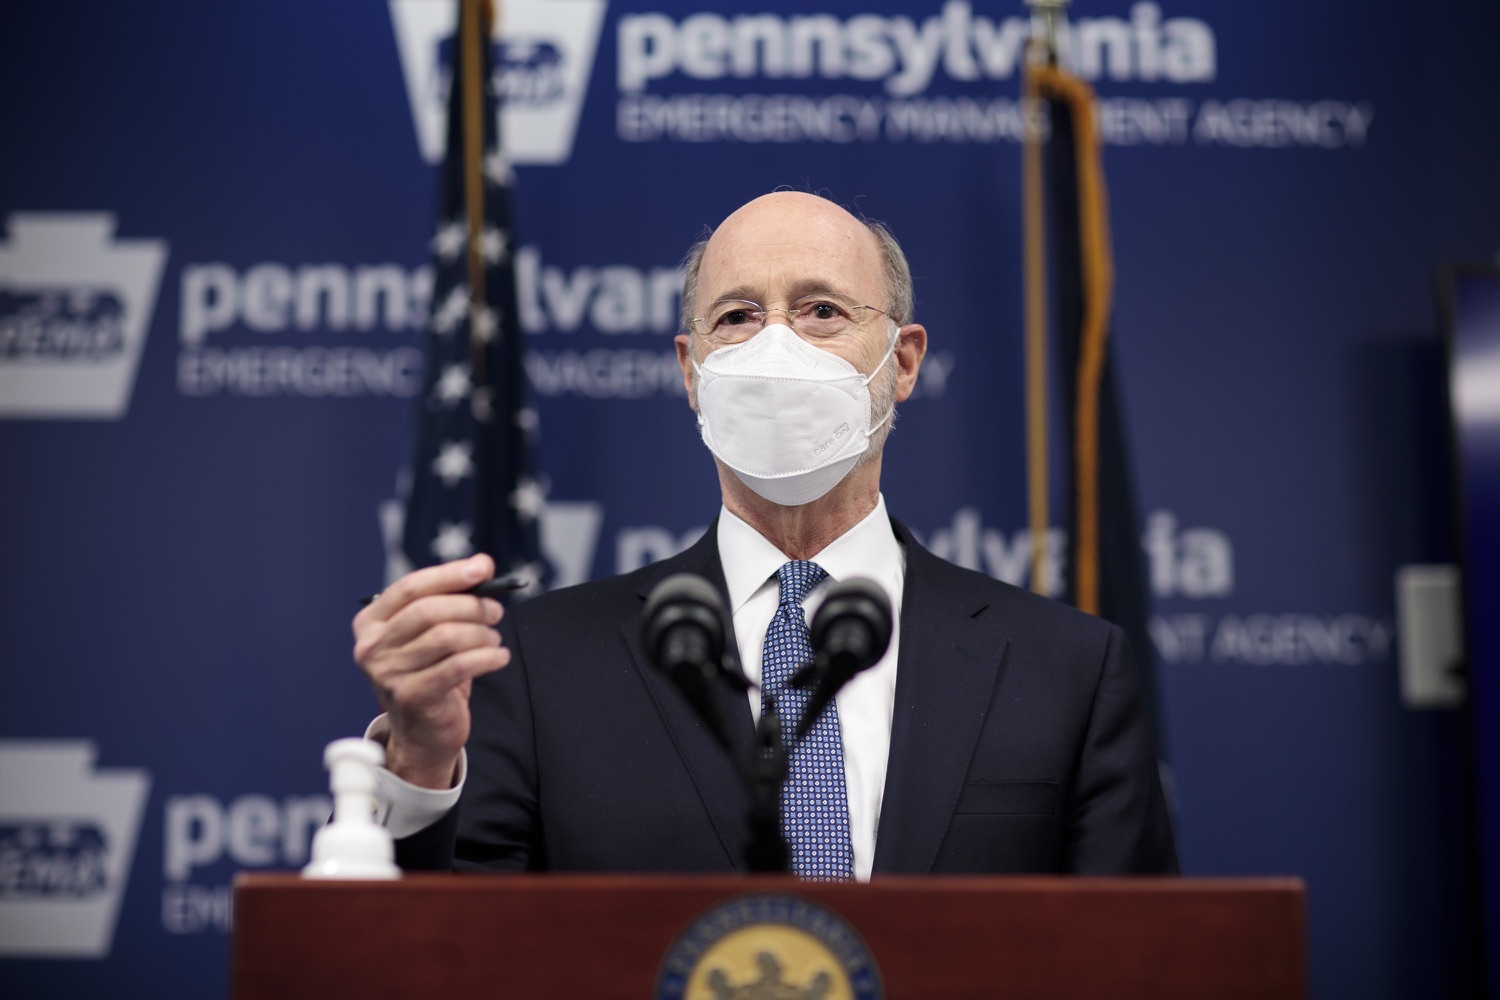 "<a href=""https://filesource.wostreaming.net/commonwealthofpa/photo/18551_gov_charterReform_dz_02.jpg"" target=""_blank"">⇣ Download Photo<br></a>Pennsylvania Governor Tom Wolf speaks to the press.  The urgent need to hold charter schools and cyber charter schools accountable has increased as enrollment and taxpayer costs have swelled during the COVID-19 pandemic. Governor Tom Wolf today unveiled a common sense and fair bipartisan plan that protects students, parents and taxpayers. The plan holds low-performing charter schools accountable to improve the quality of education, protects taxpayers by reining in skyrocketing charter school costs and increases the transparency of for-profit companies that run many charter schools. Harrisburg, PA  February 26, 2021"